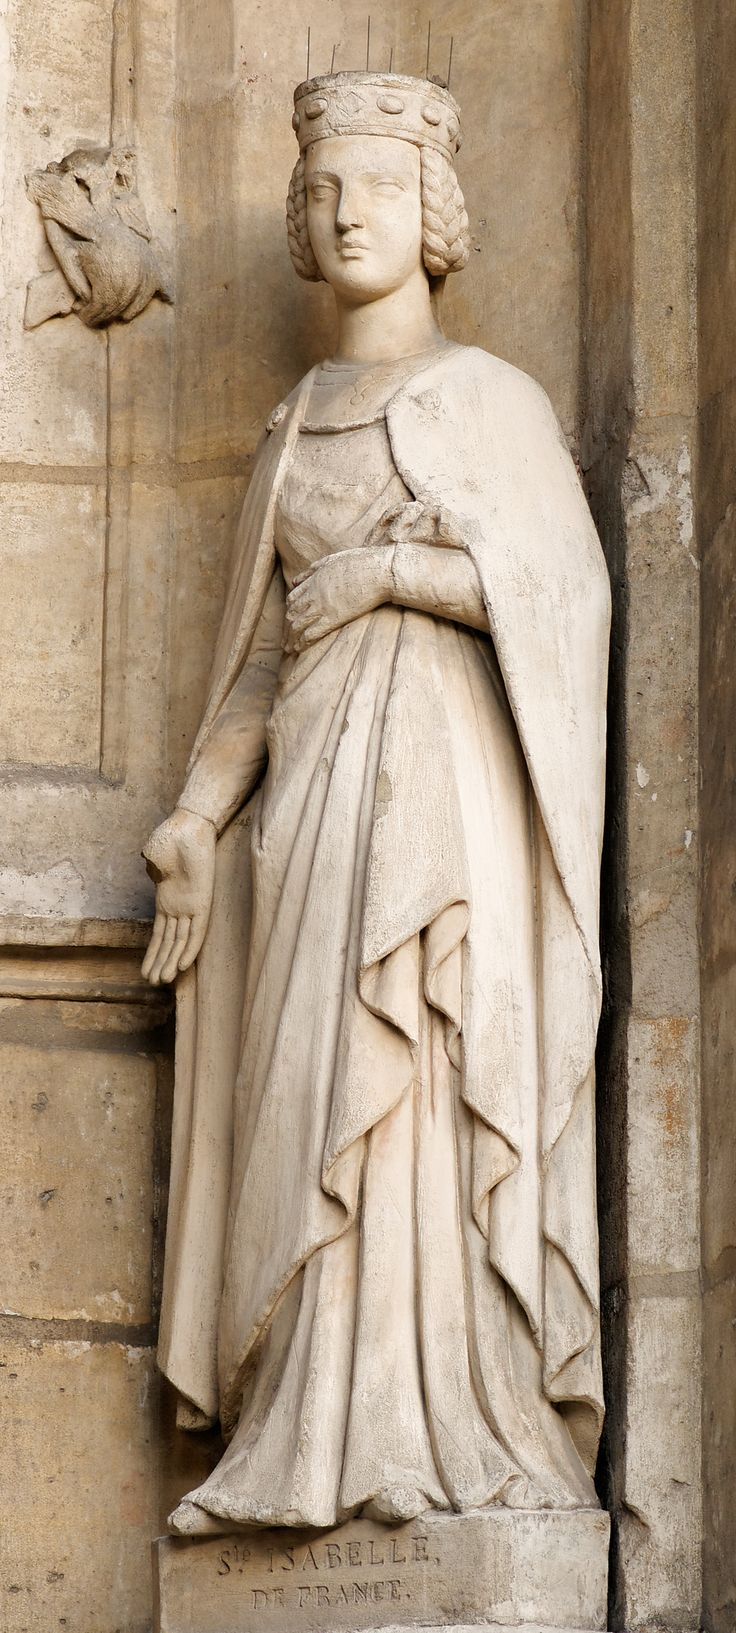 Saint Isabelle of France: daughter of Louis VIII. and younger sister of King Louis IX of France.